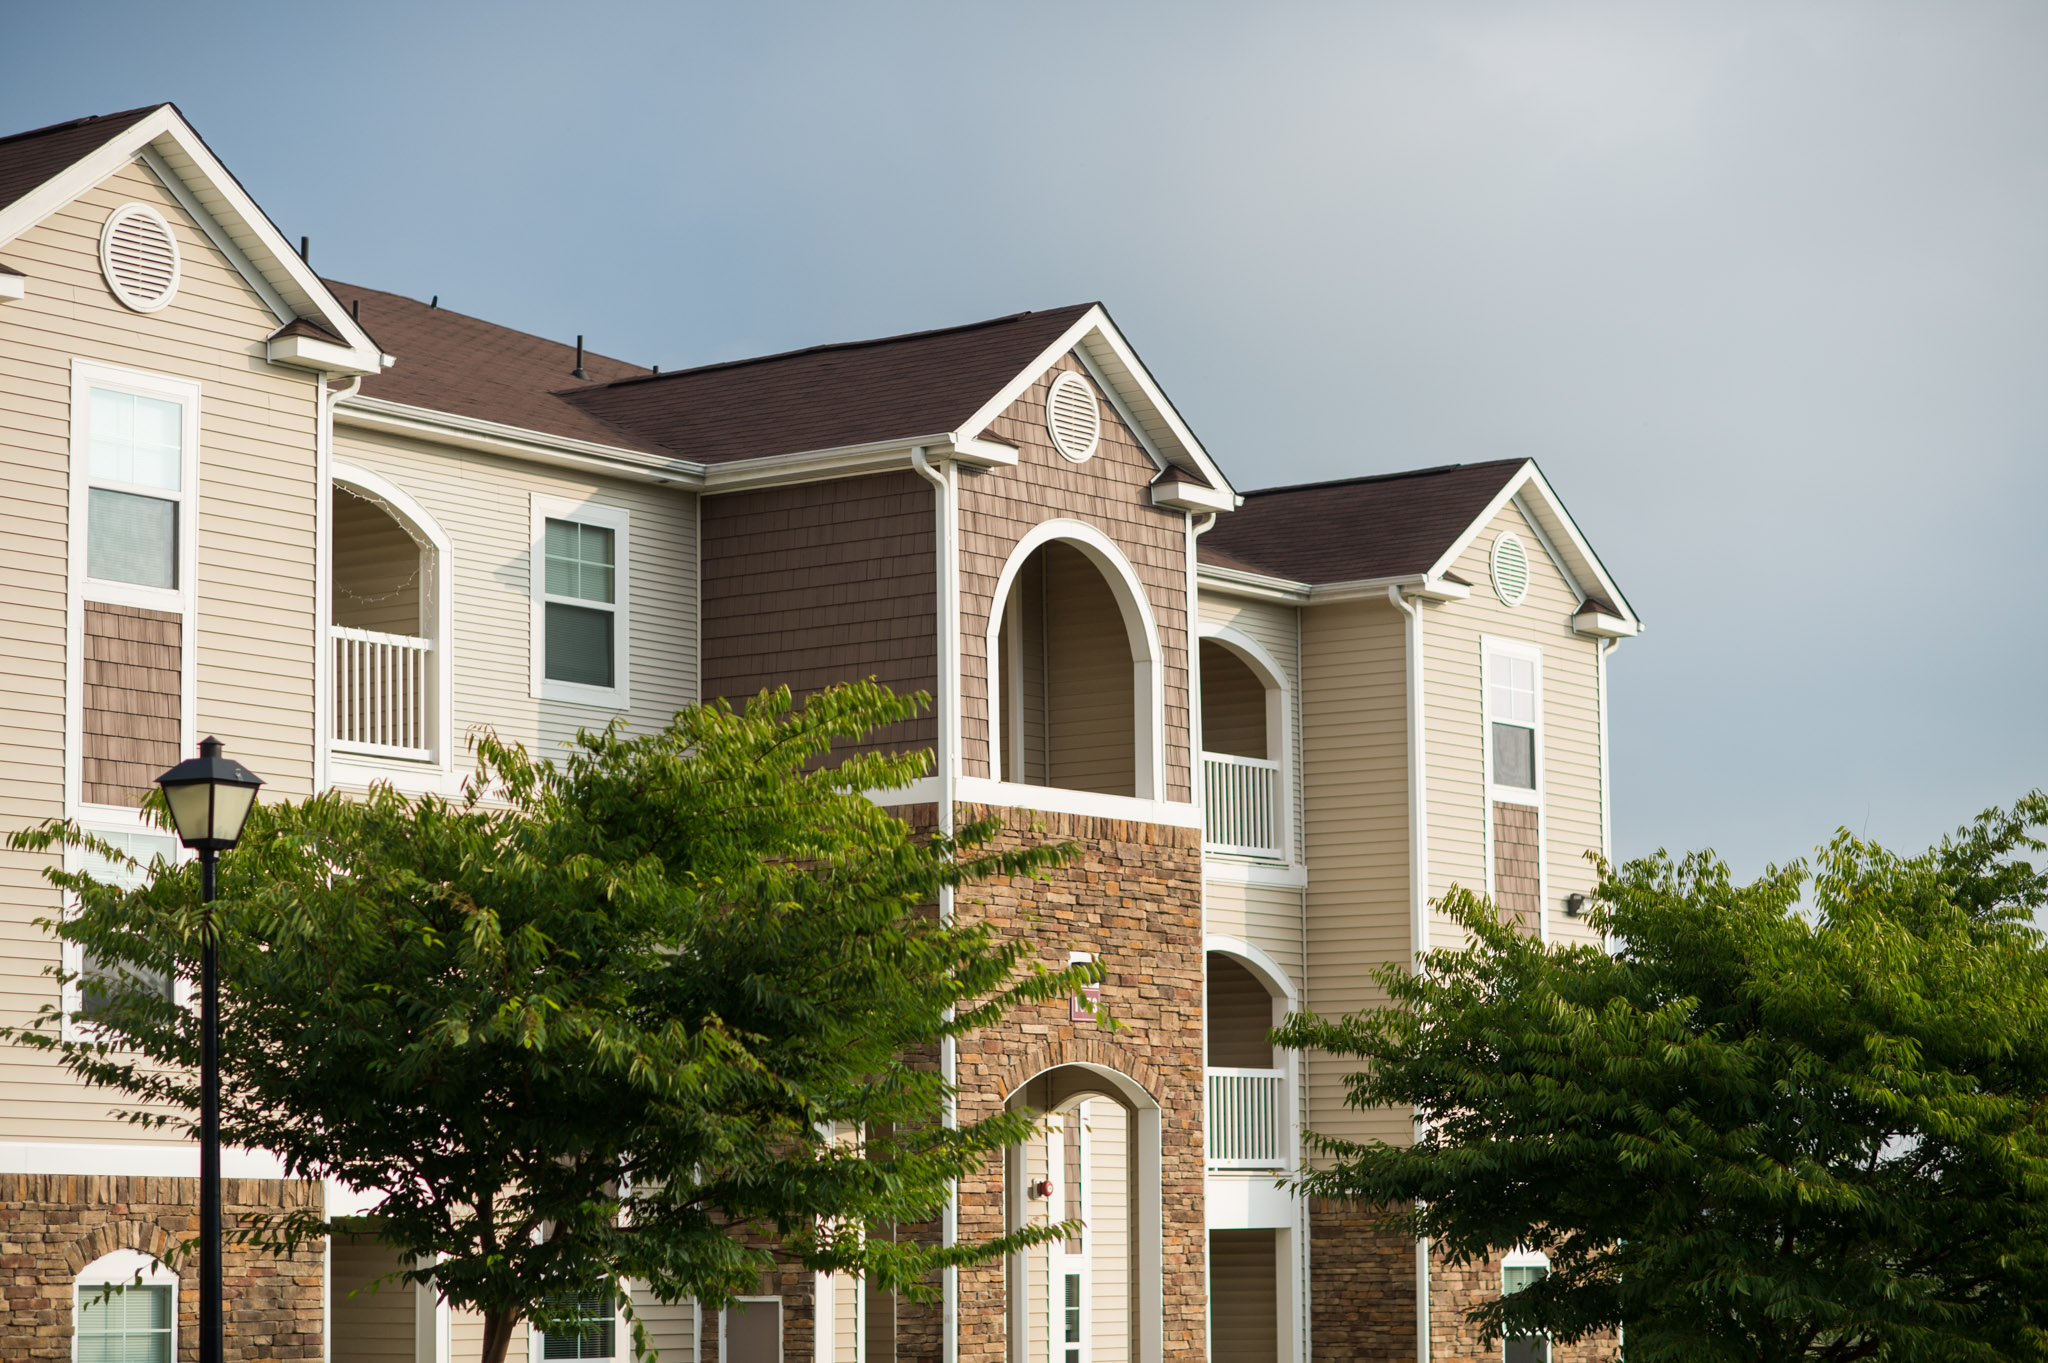 North 38 Exteriors for Web-1056.jpg